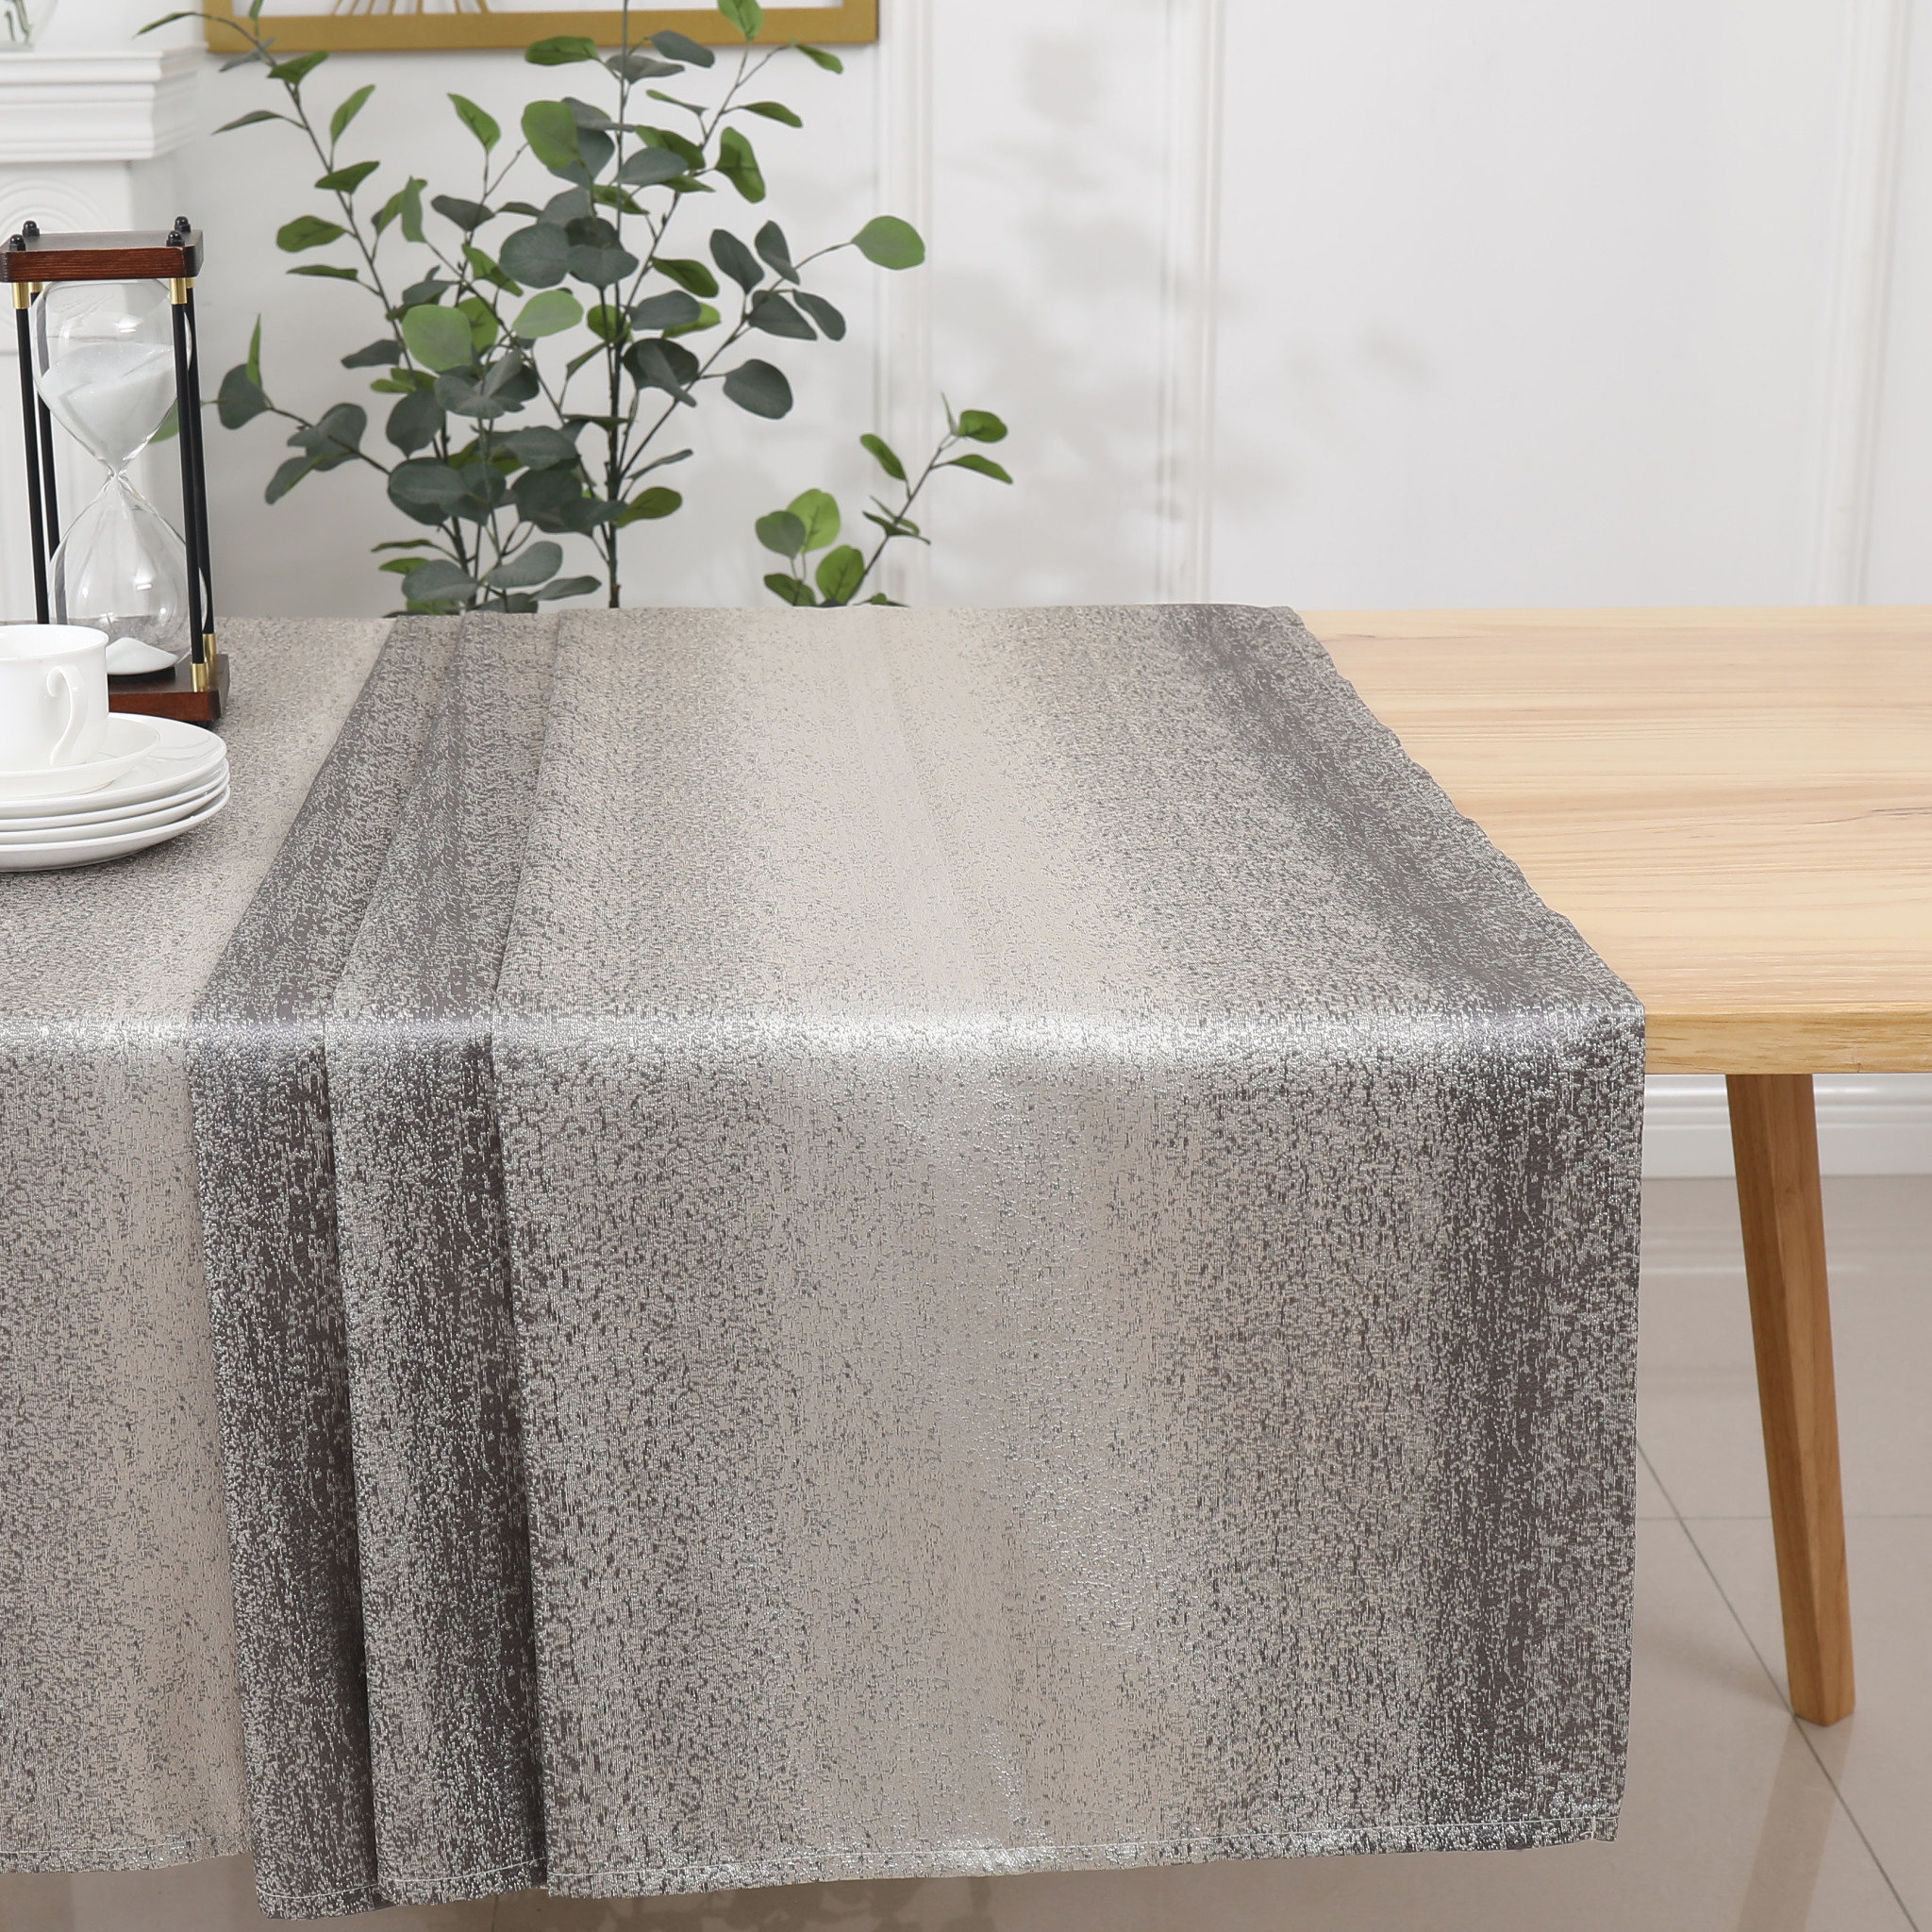 TCS16-1202 Jacquard 60 x 90 Tablecloth